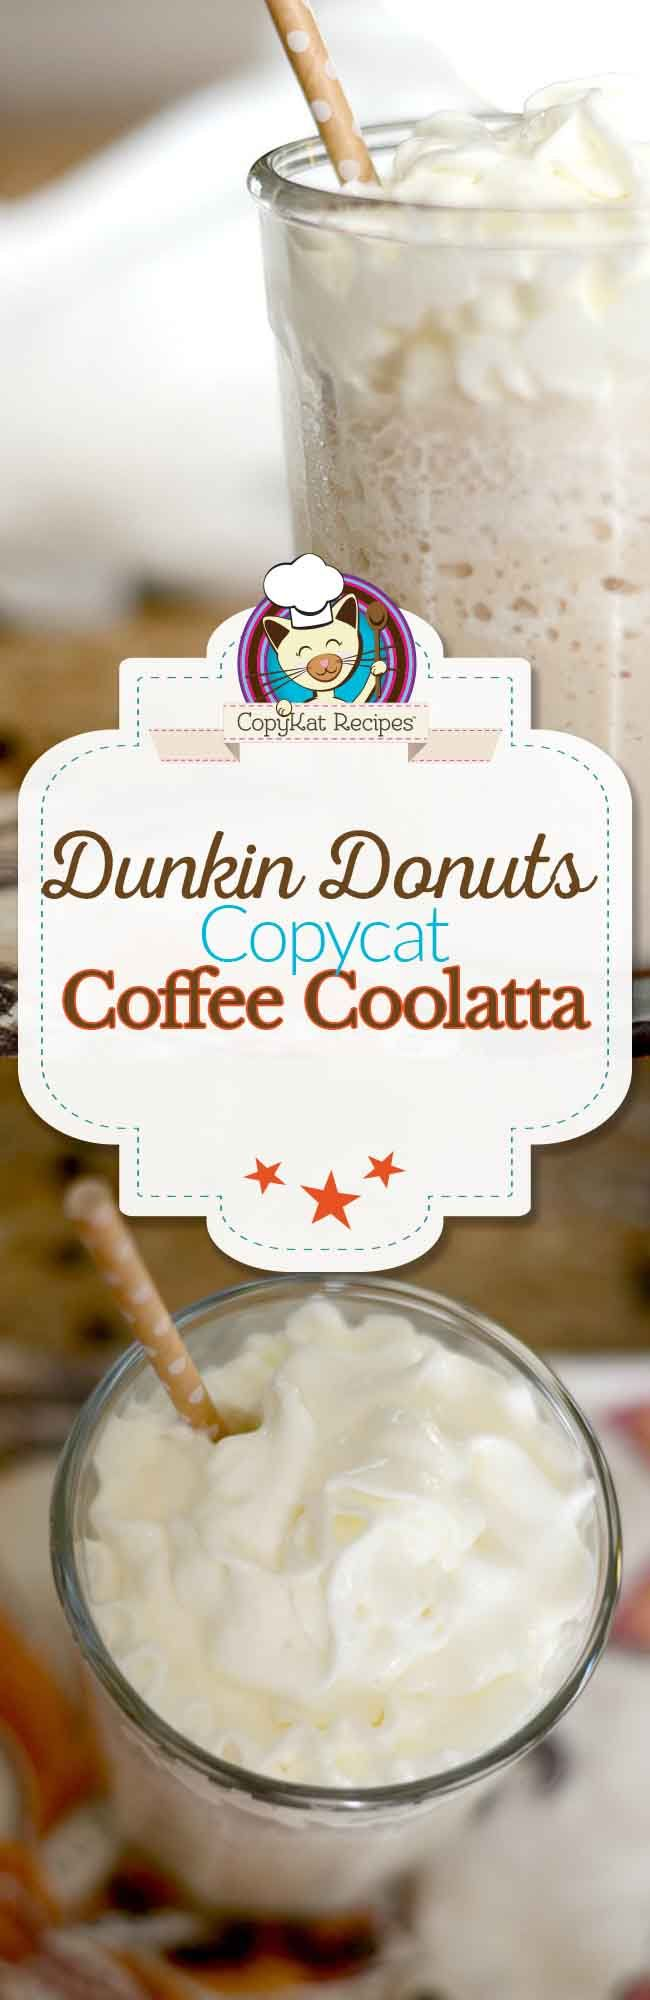 Make a delicious Dunkin Donuts Coffee Coolatta at home with this easy copycat recipe.